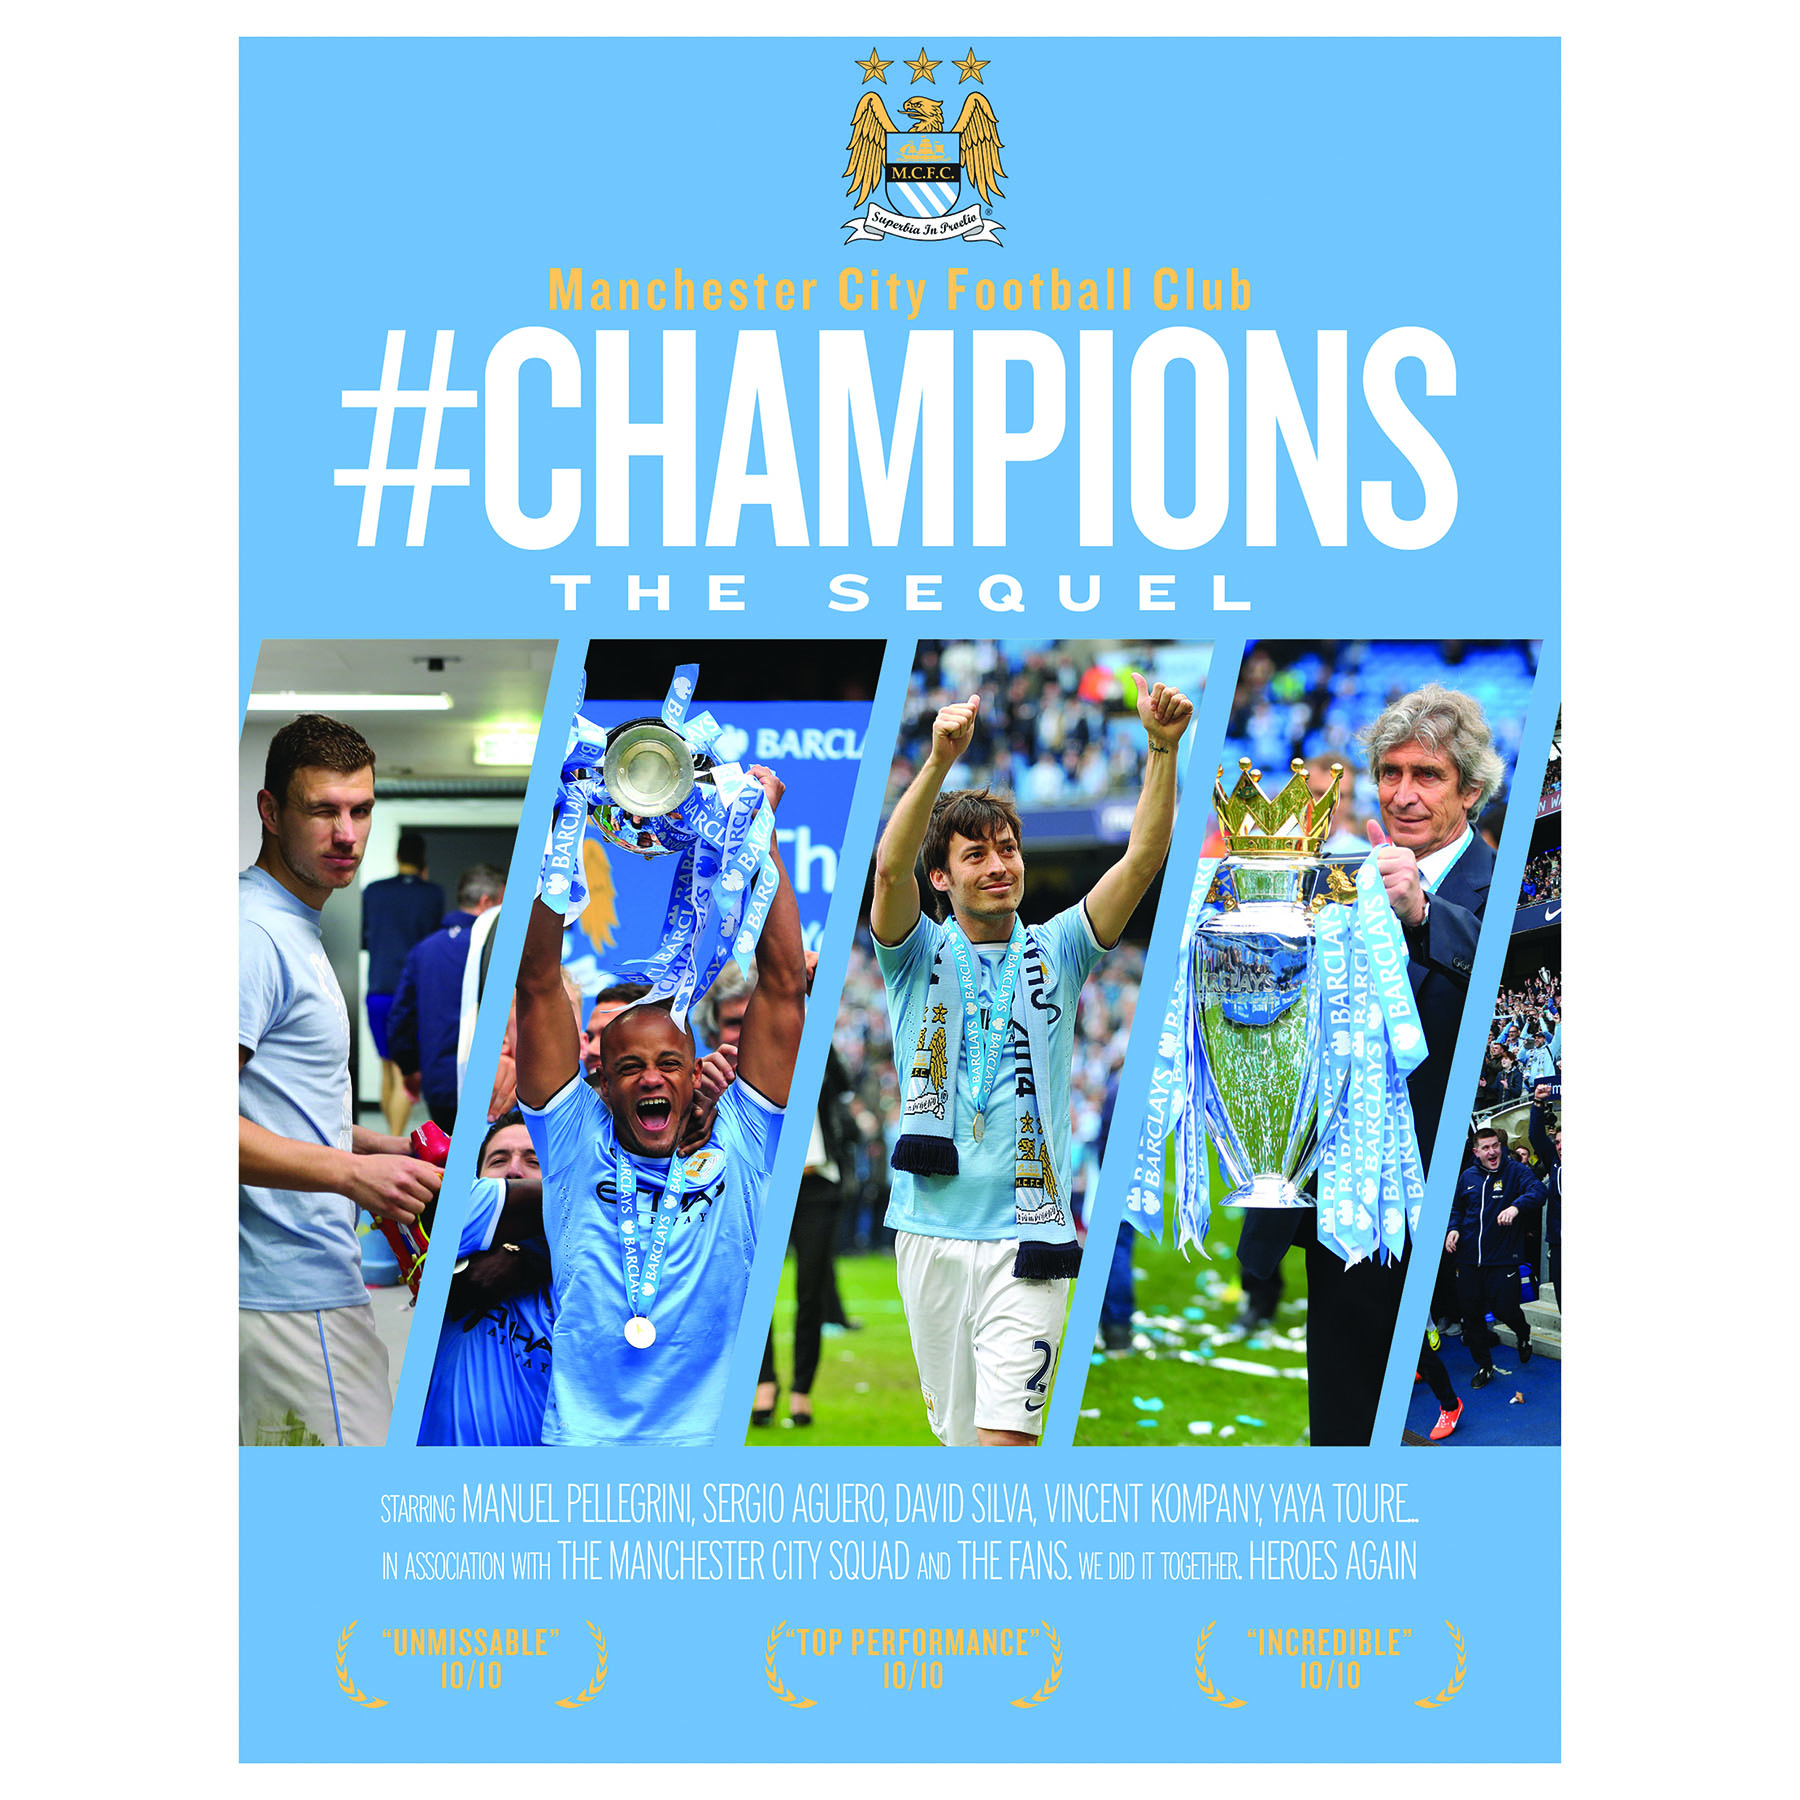 Manchester City Champions Book The Sequel